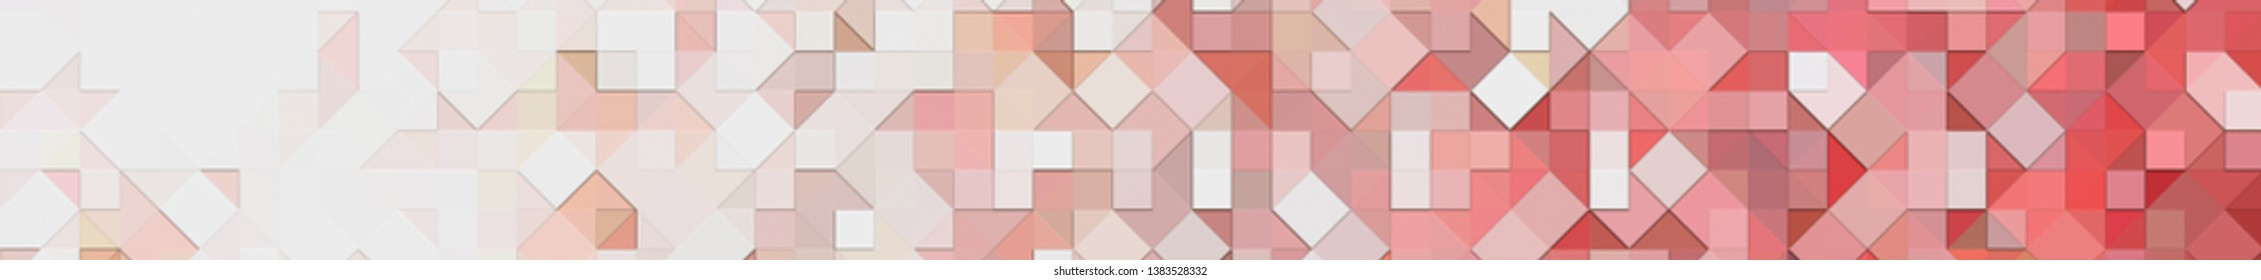 Panoramic red background texture with mosaic. Geometric mosaic design. Abstract color trendy background. Mosaic texture with geometric shapes.